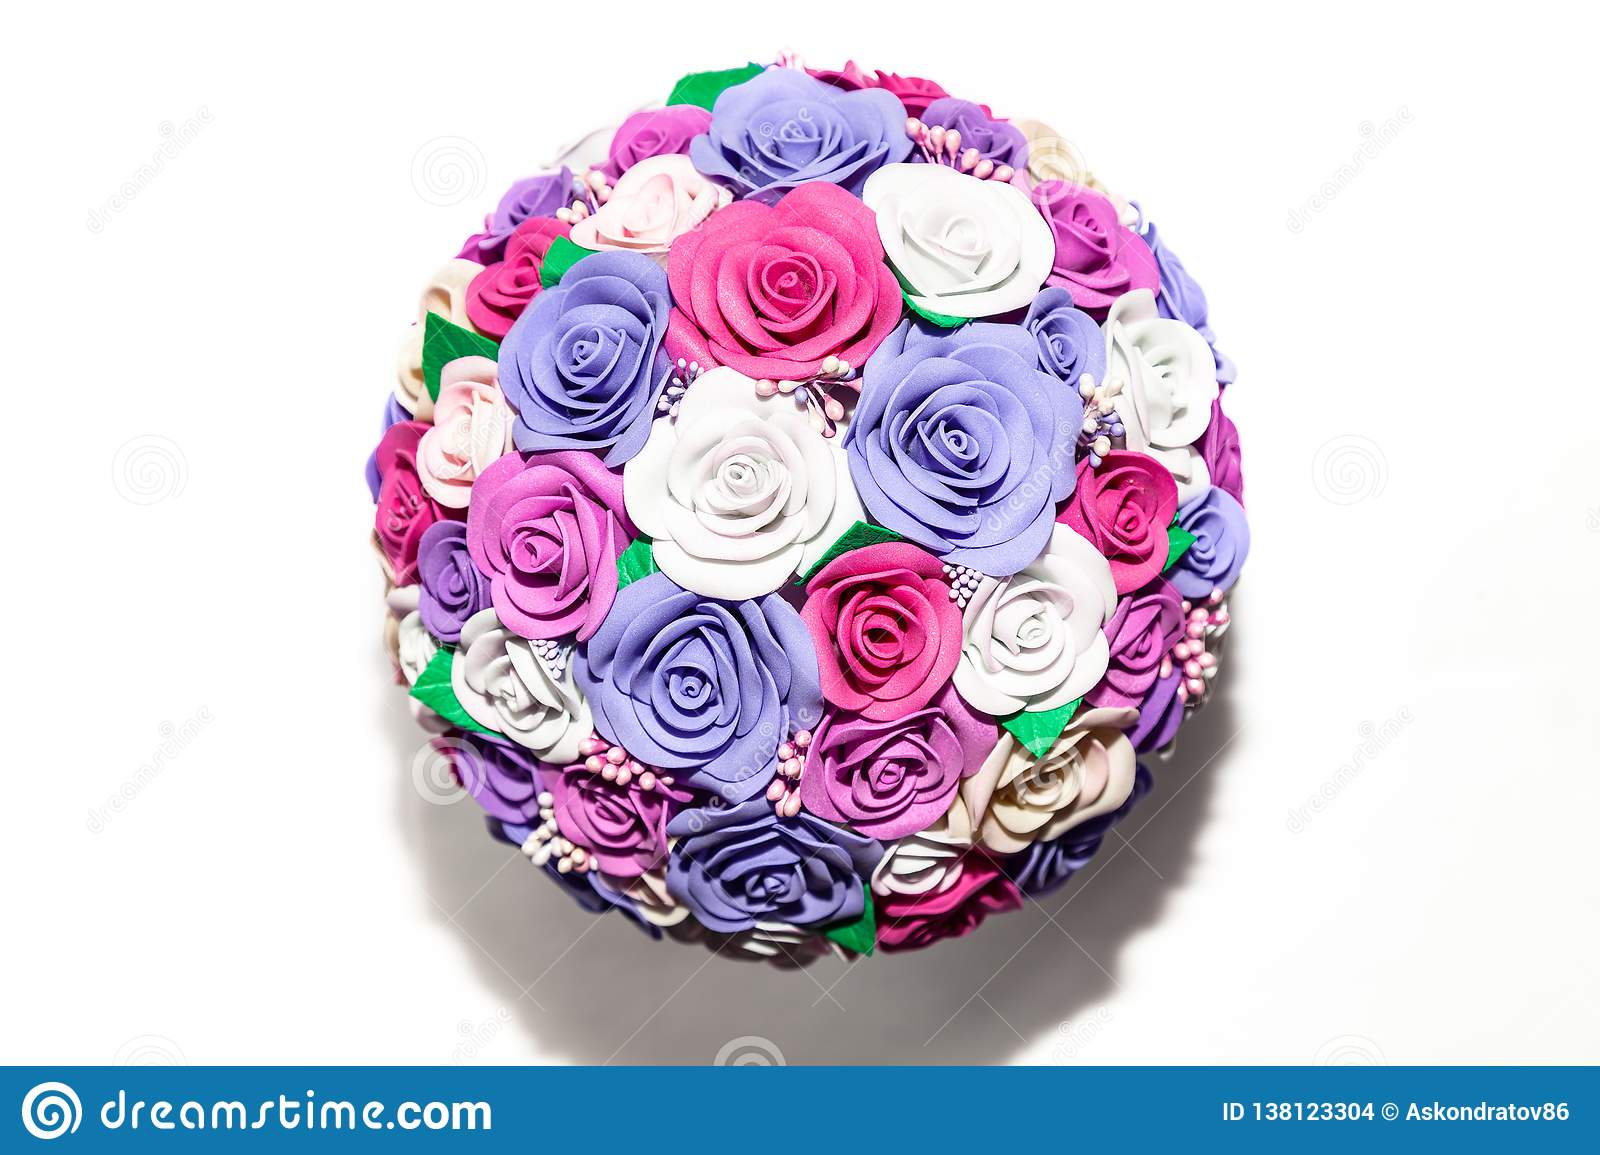 A close-up of a romantic artificial bouquet of flowers of a lilac, pink and white fabric on an empty background is a gift for a